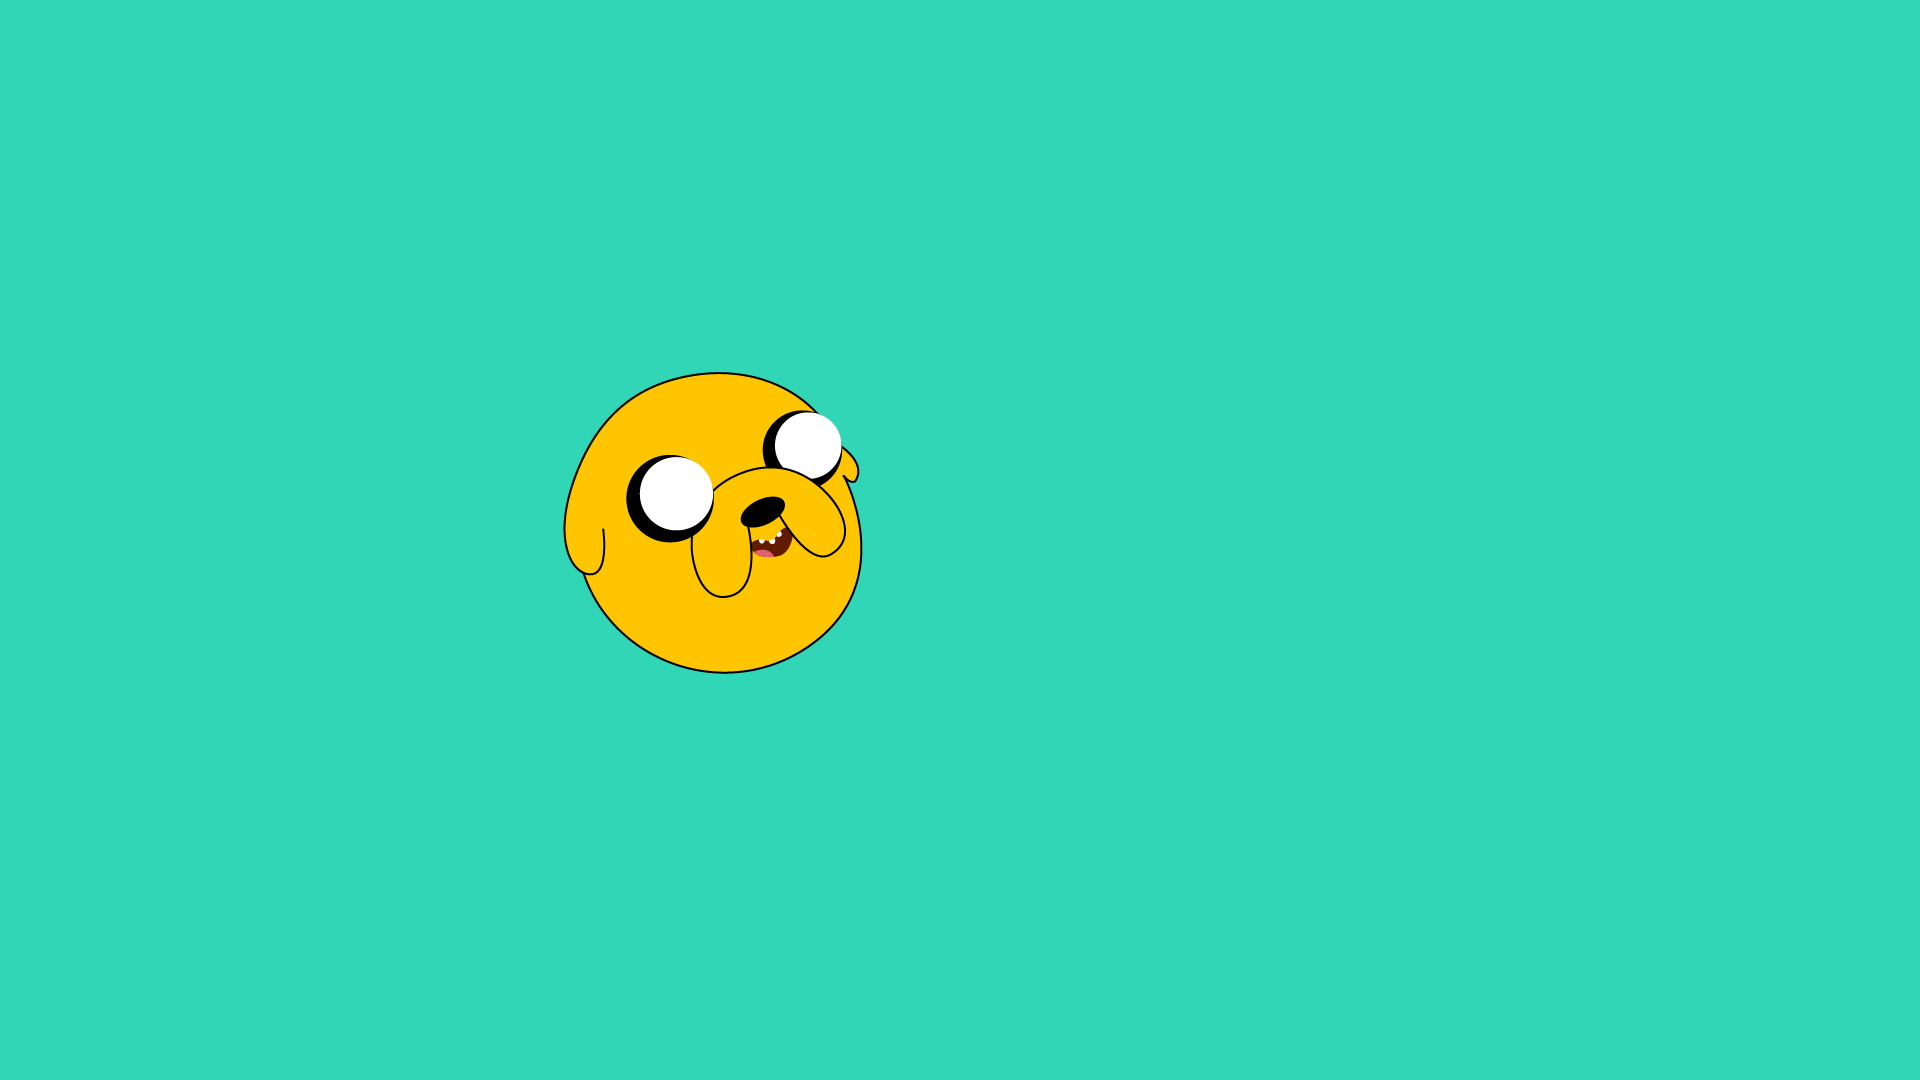 Jake Adventure Time   Wallpaper High Definition High Quality 1920x1080